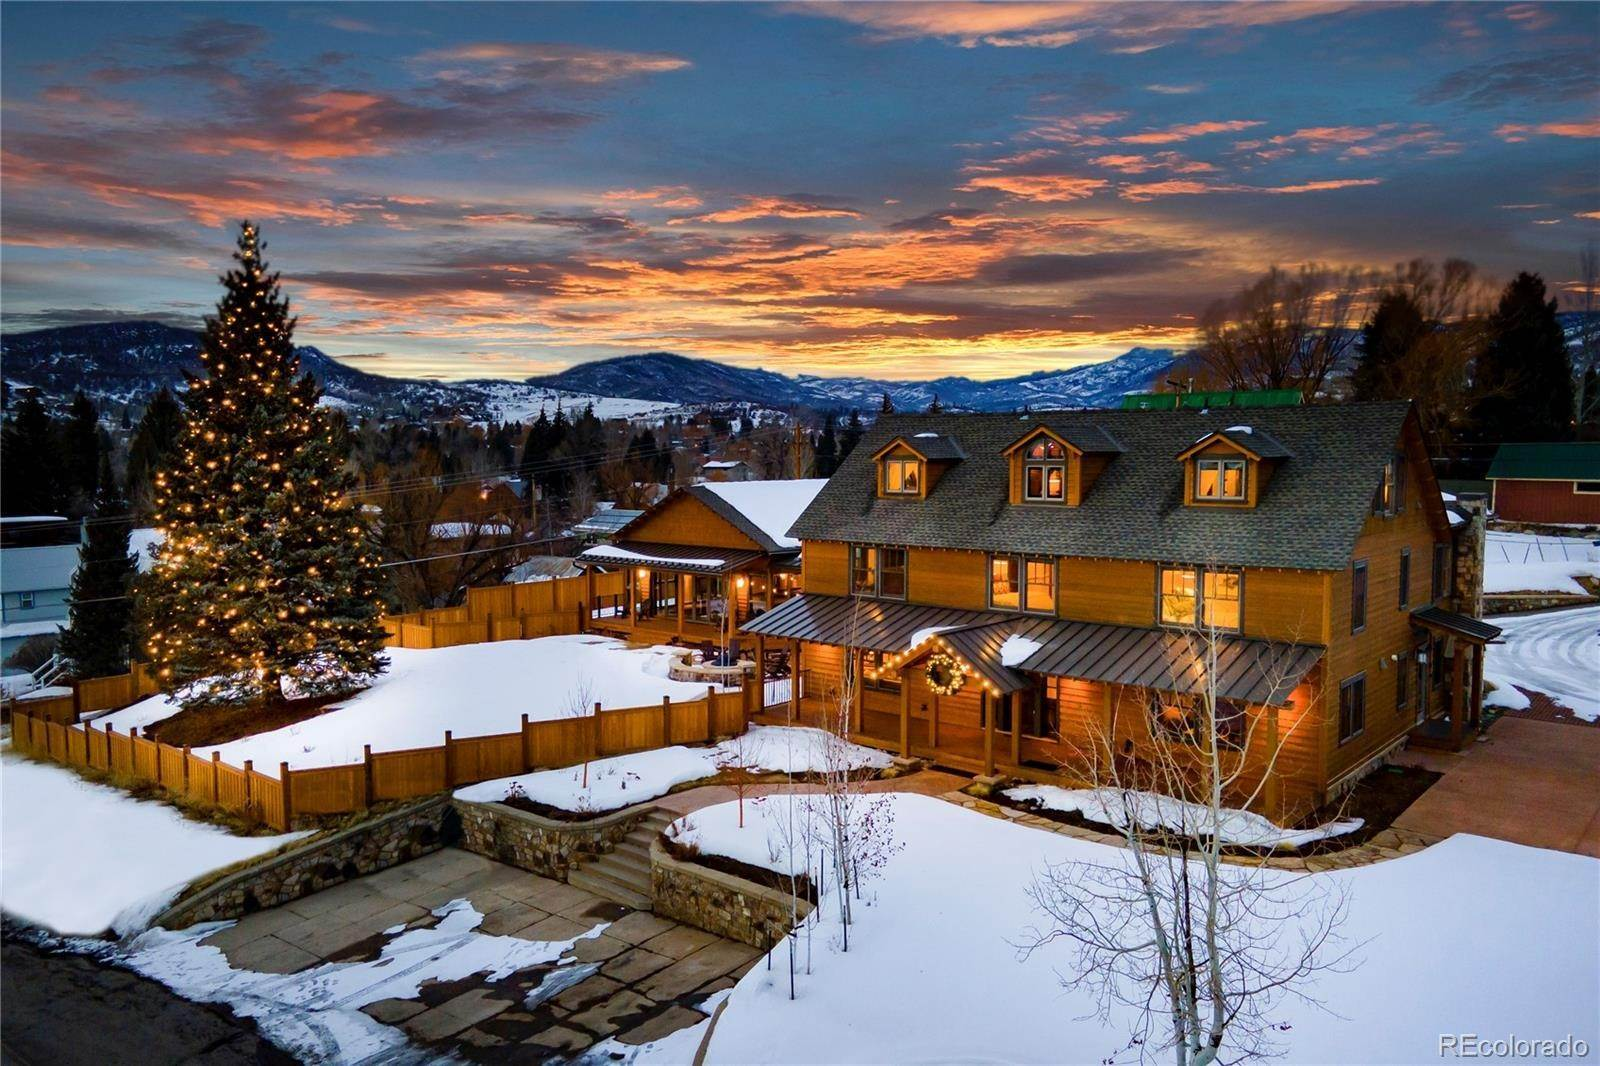 Single Family Homes for Sale at 442 and 428 Pine Street Steamboat Springs, Colorado 80487 United States